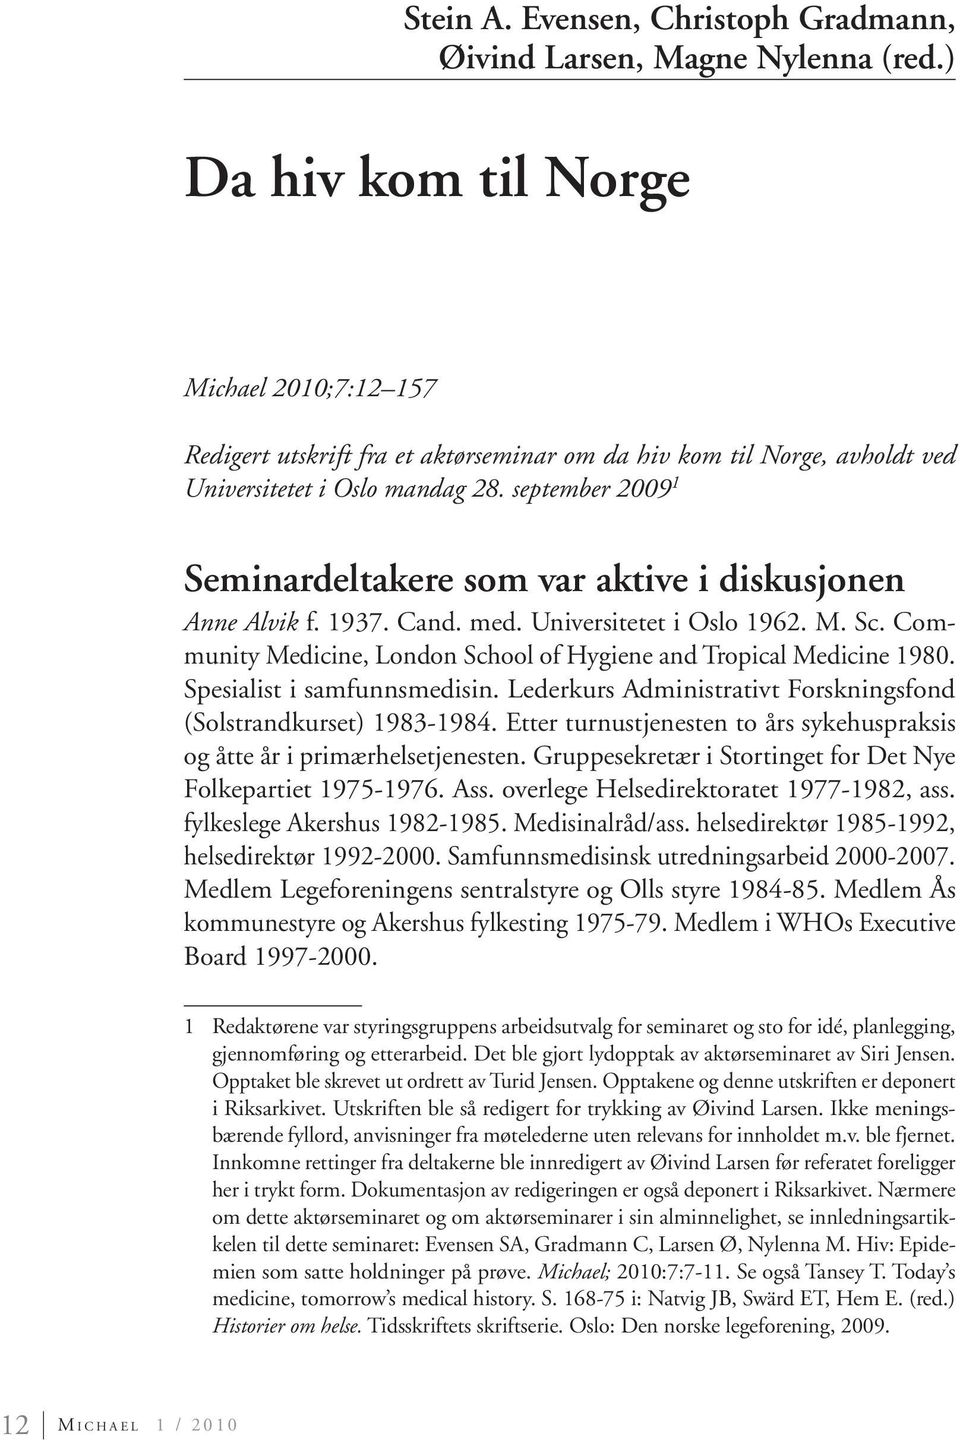 september 2009 1 Seminardeltakere som var aktive i diskusjonen Anne Alvik f. 1937. Cand. med. Universitetet i Oslo 1962. M. Sc. Community Medicine, London School of Hygiene and Tropical Medicine 1980.